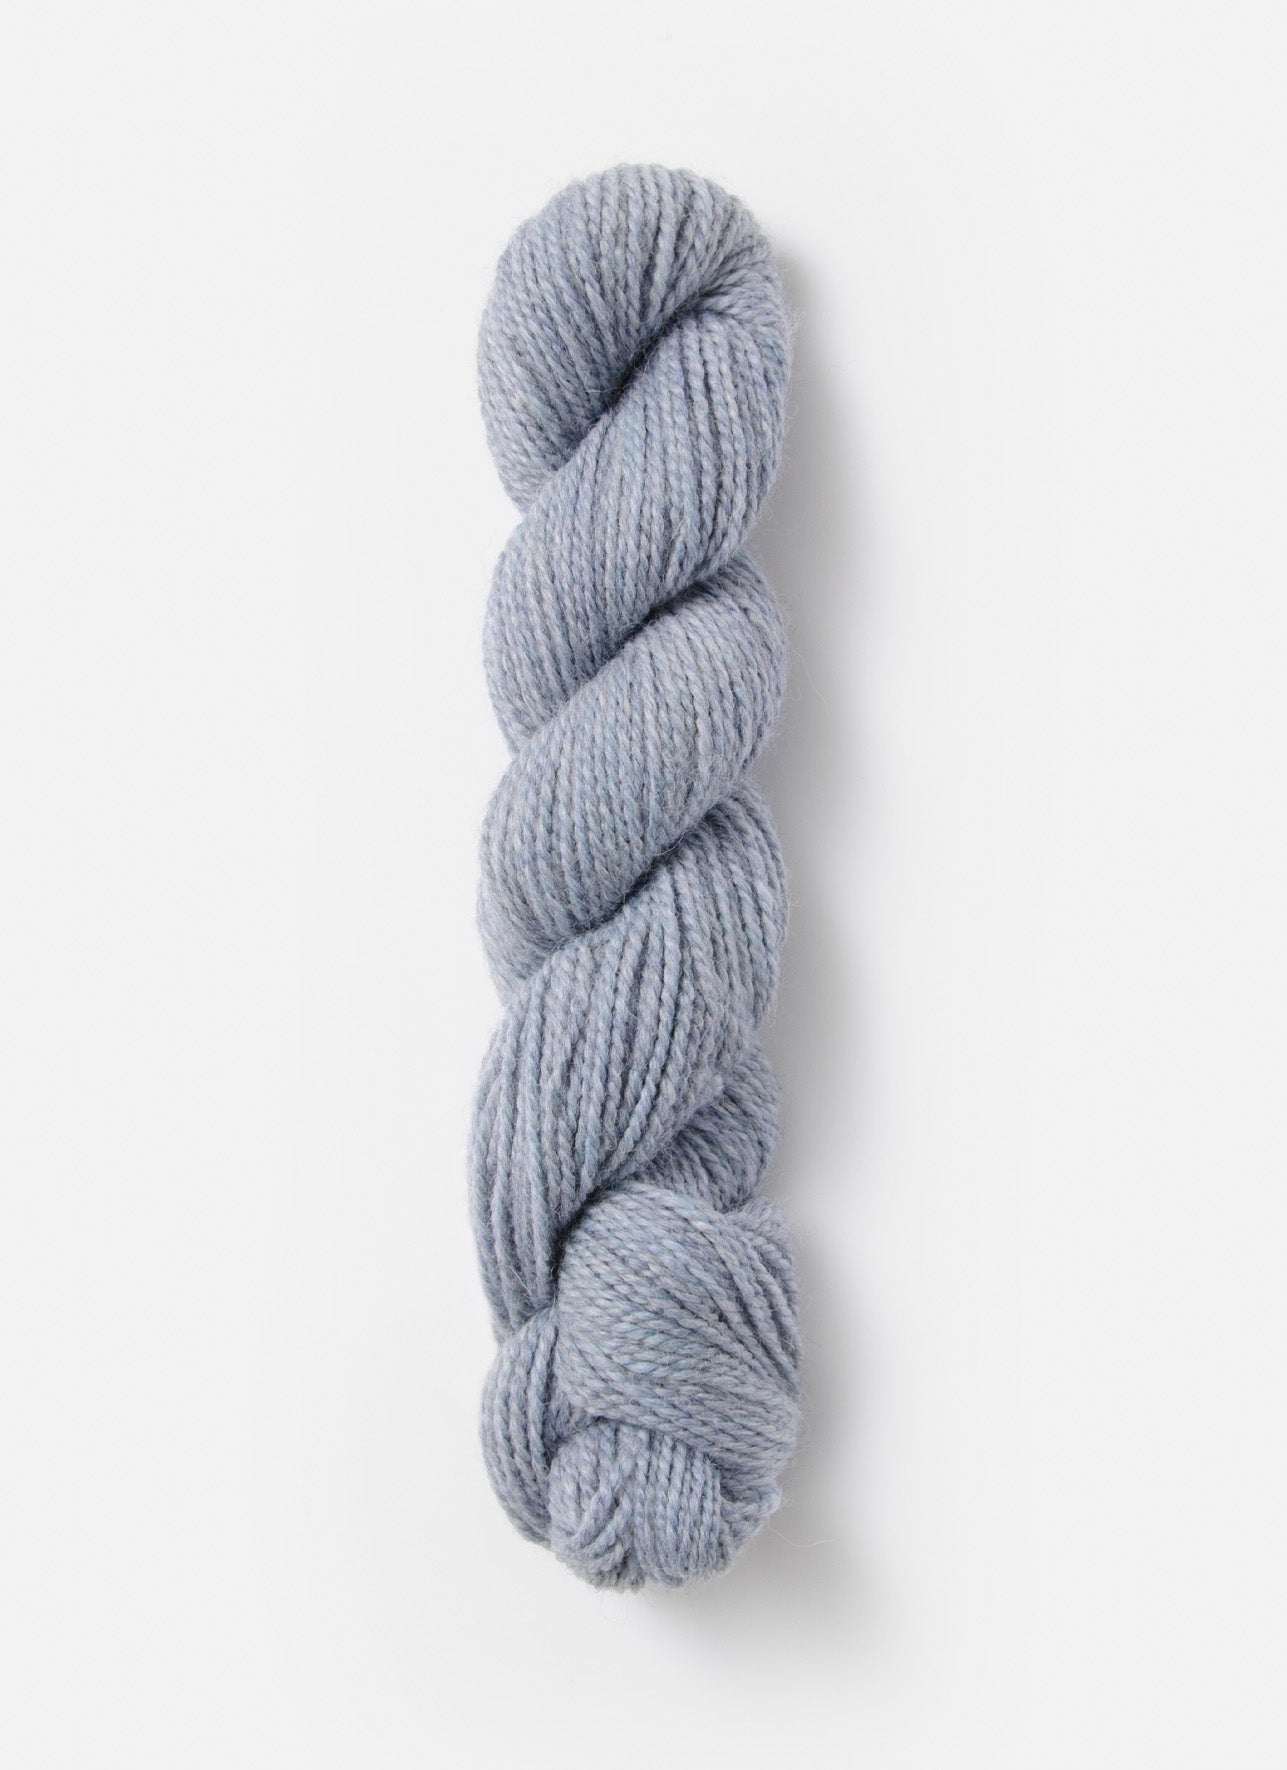 Blue Sky Fibers Yarn - Baby Alpaca - Sport Weight - Multiple Colors